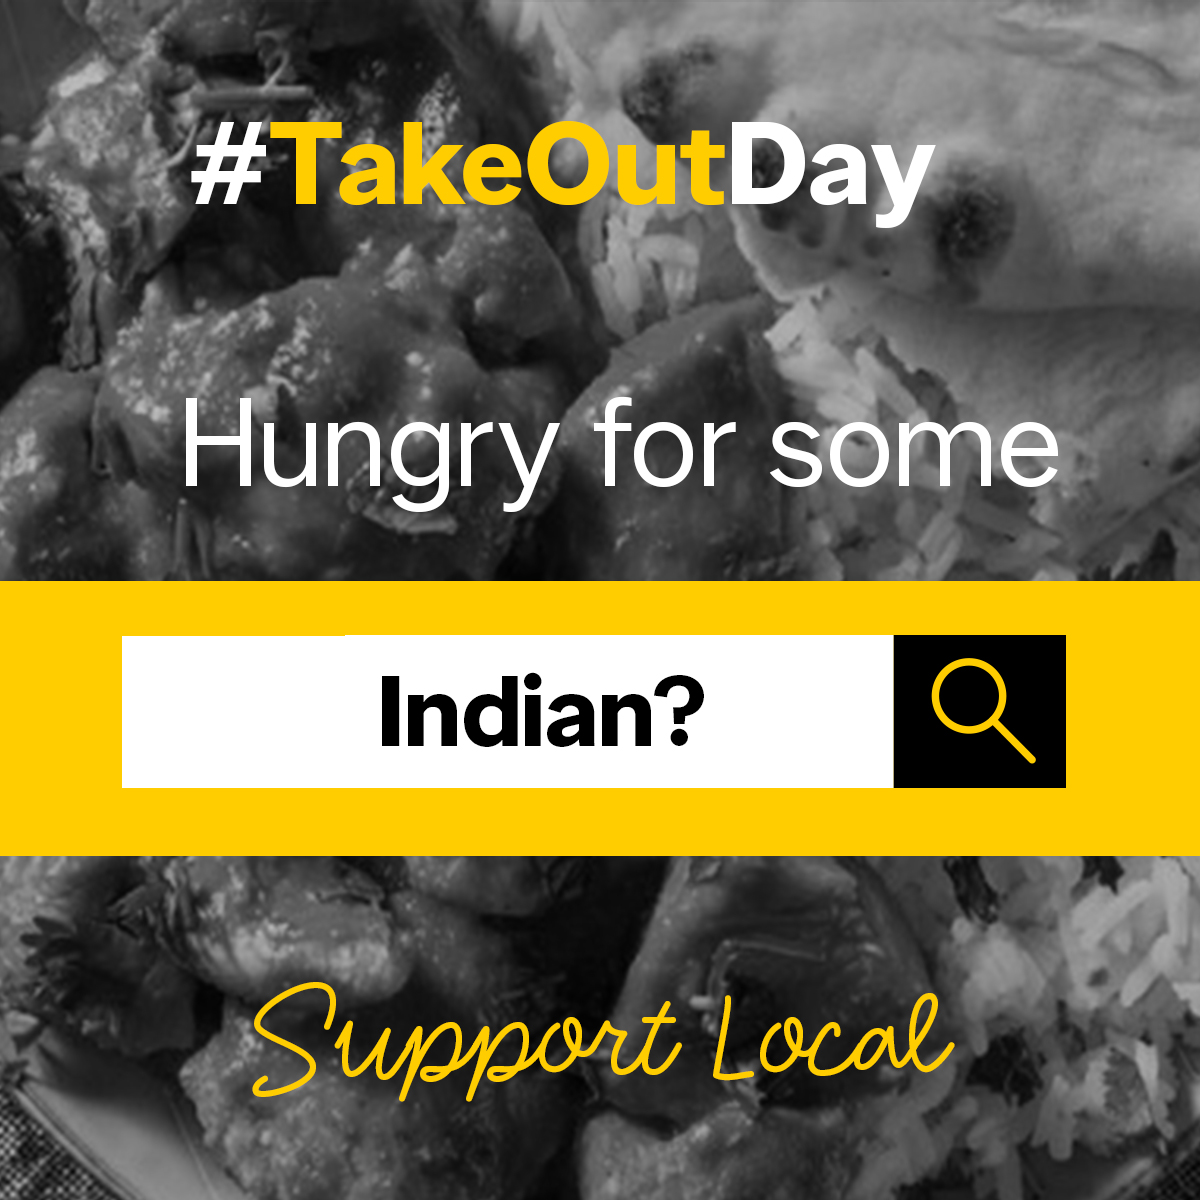 Does this image stir up cravings for Indian cuisine? Order in or get take out and support your local Indian restaurants today! #TakeOutDay!  ----> https://t.co/kmqCsGCjZq https://t.co/7KLr37ByWD